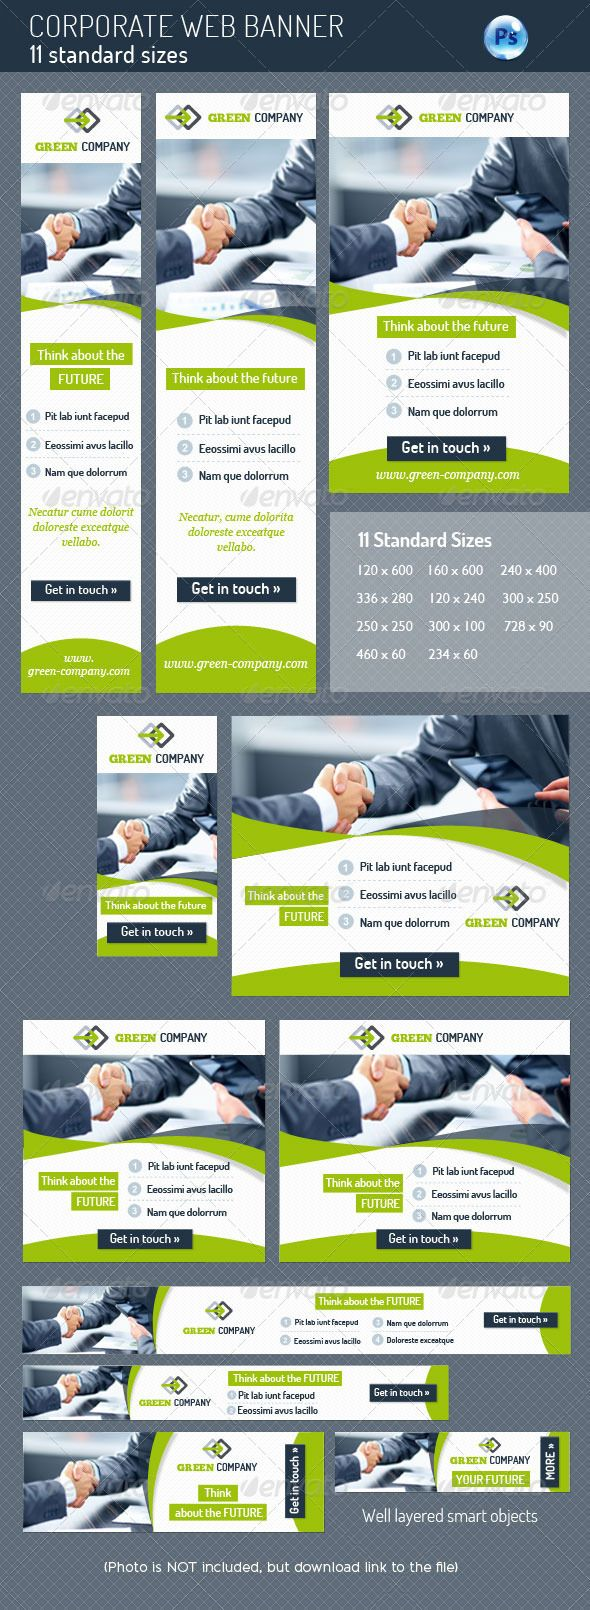 Corporate Web Banner Template PSD | Buy and Download: http://graphicriver.net/item/corporate-web-banner/5022117?WT.ac=category_thumb&WT.z_author=corrella&ref=ksioks